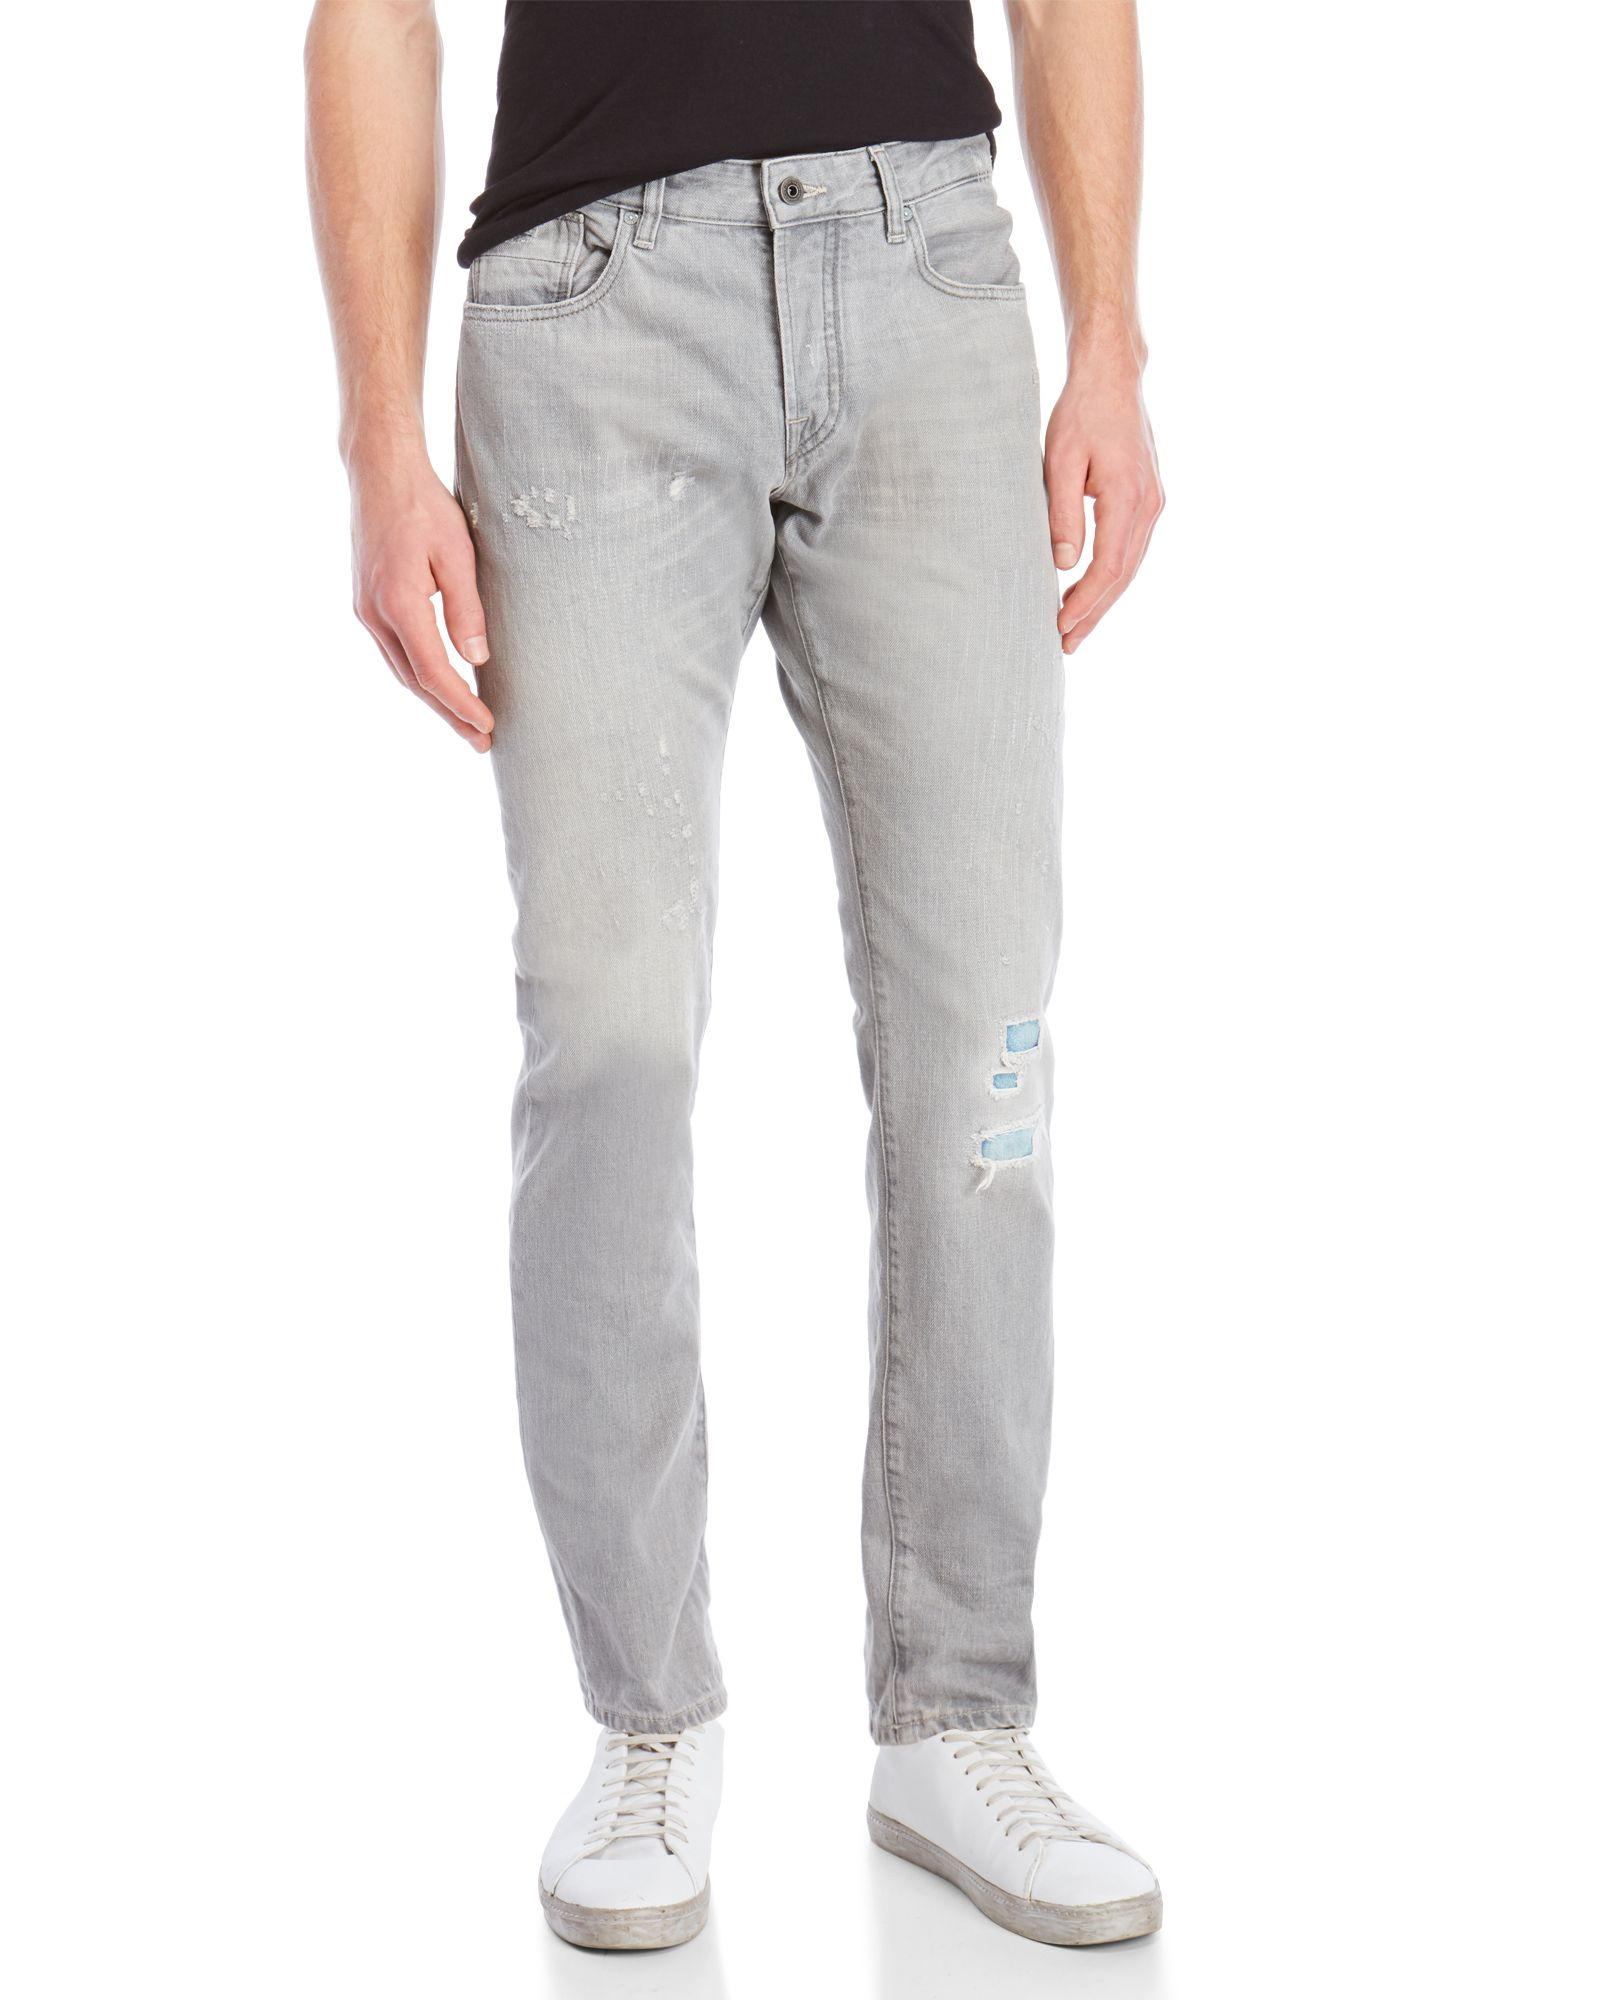 Scotch & Soda Realston Distressed Taper Jeans